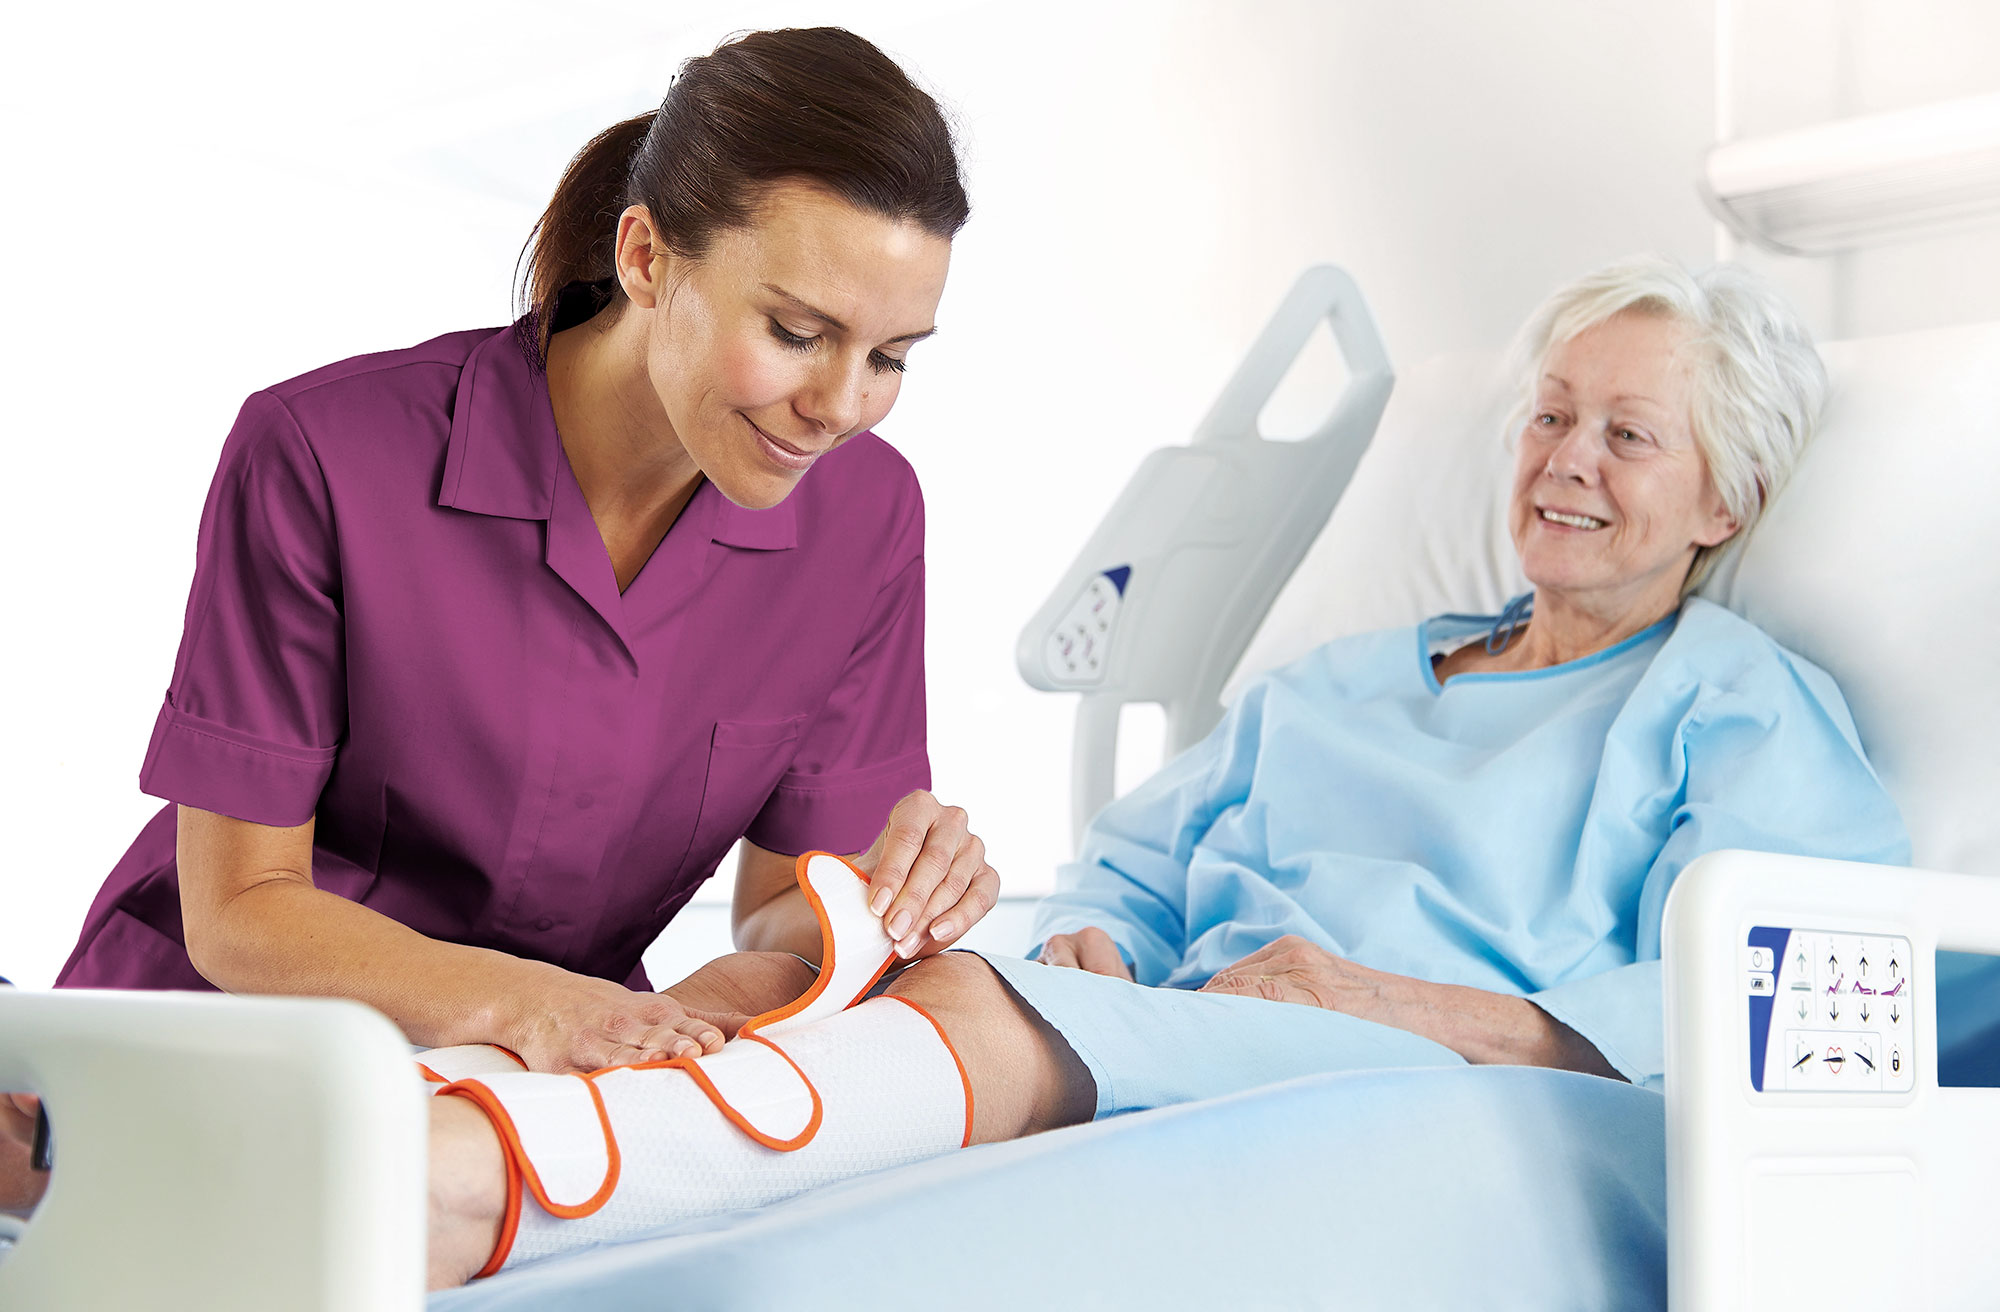 World Thrombosis Day - VTE, a fatal but preventable medical condition